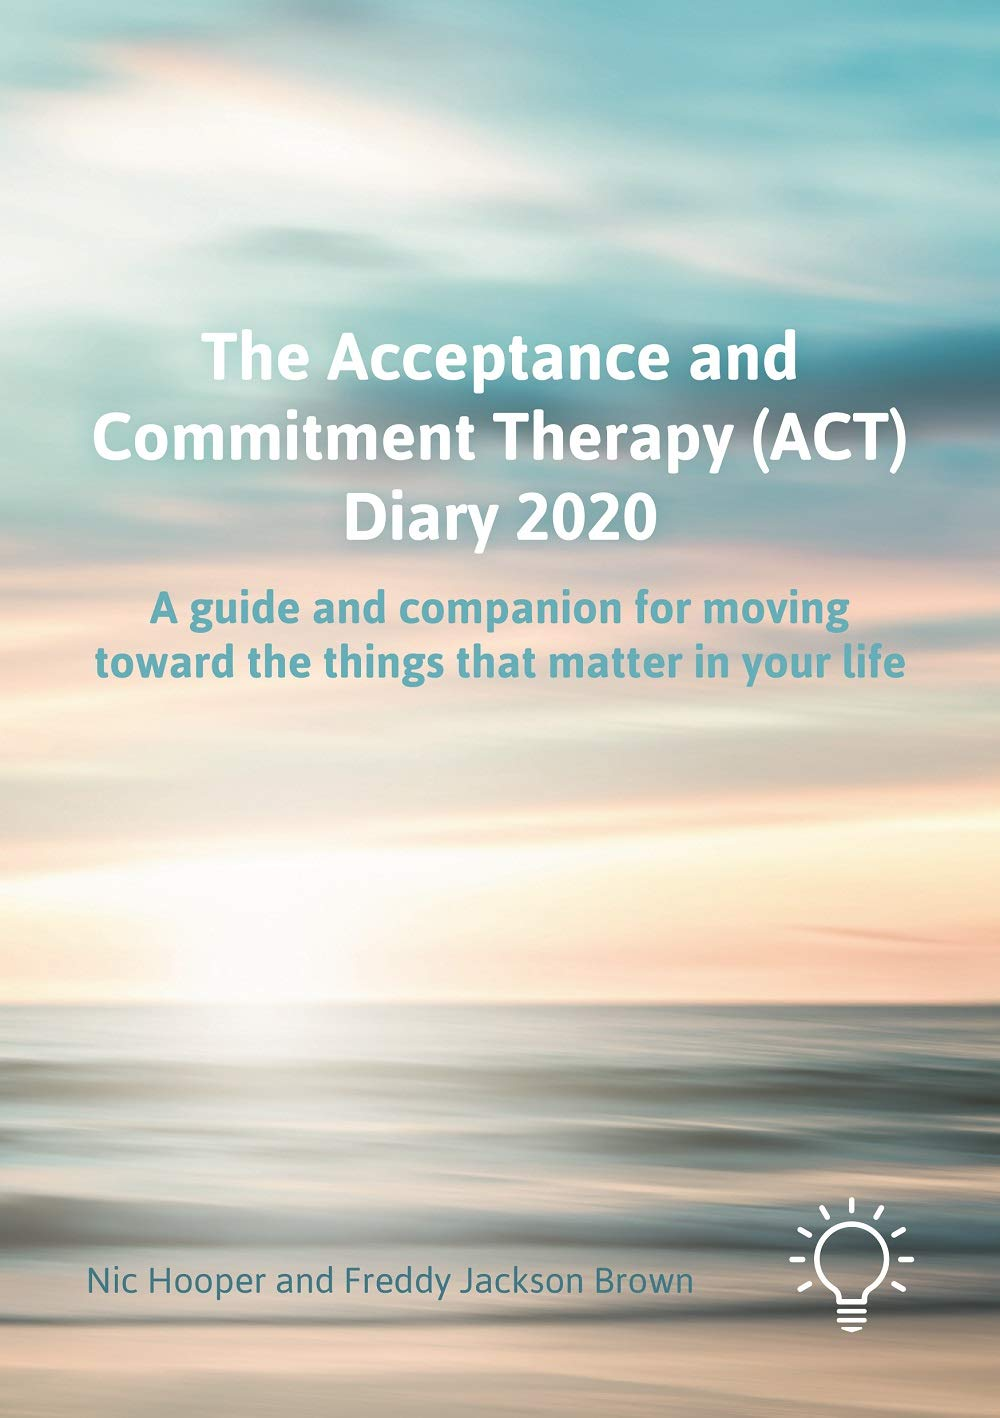 The Acceptance And Commitment Therapy  ACT  Diary 2020  A Guide And Companion For Moving Toward The Things That Matter In Your Life